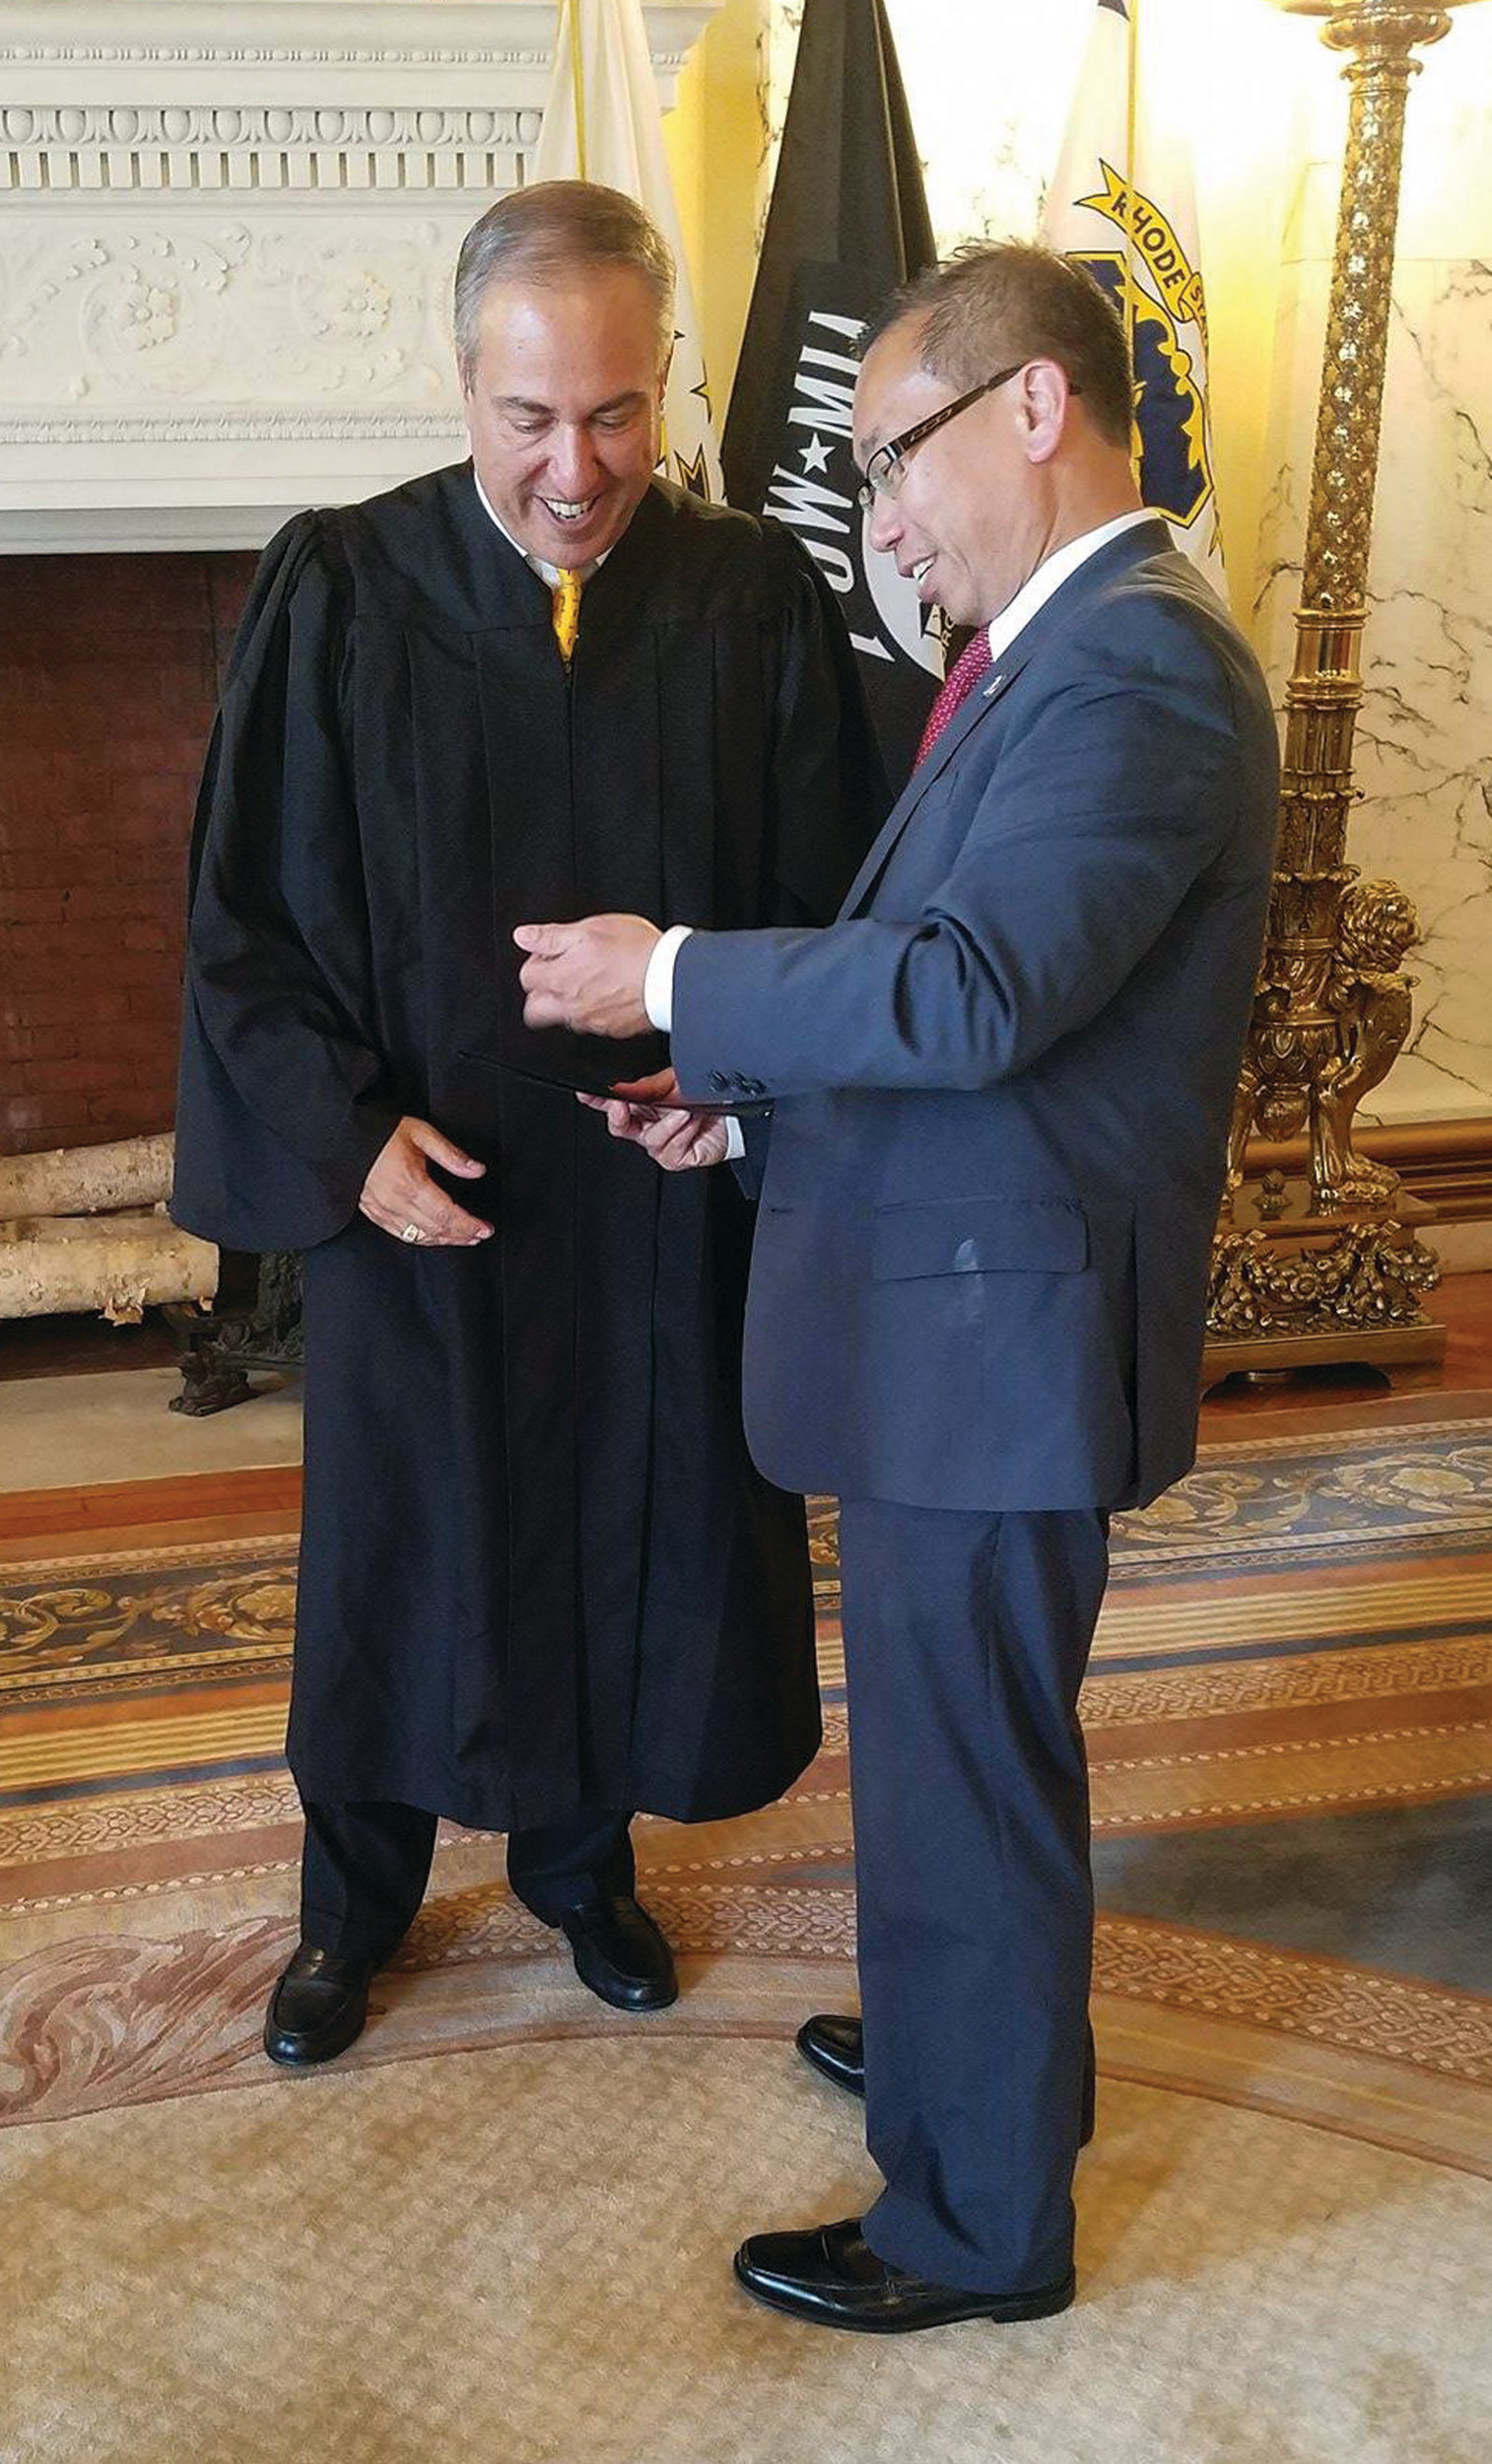 Steven Minicucci was sworn in this past week as Workers' Compensation Court Judge.